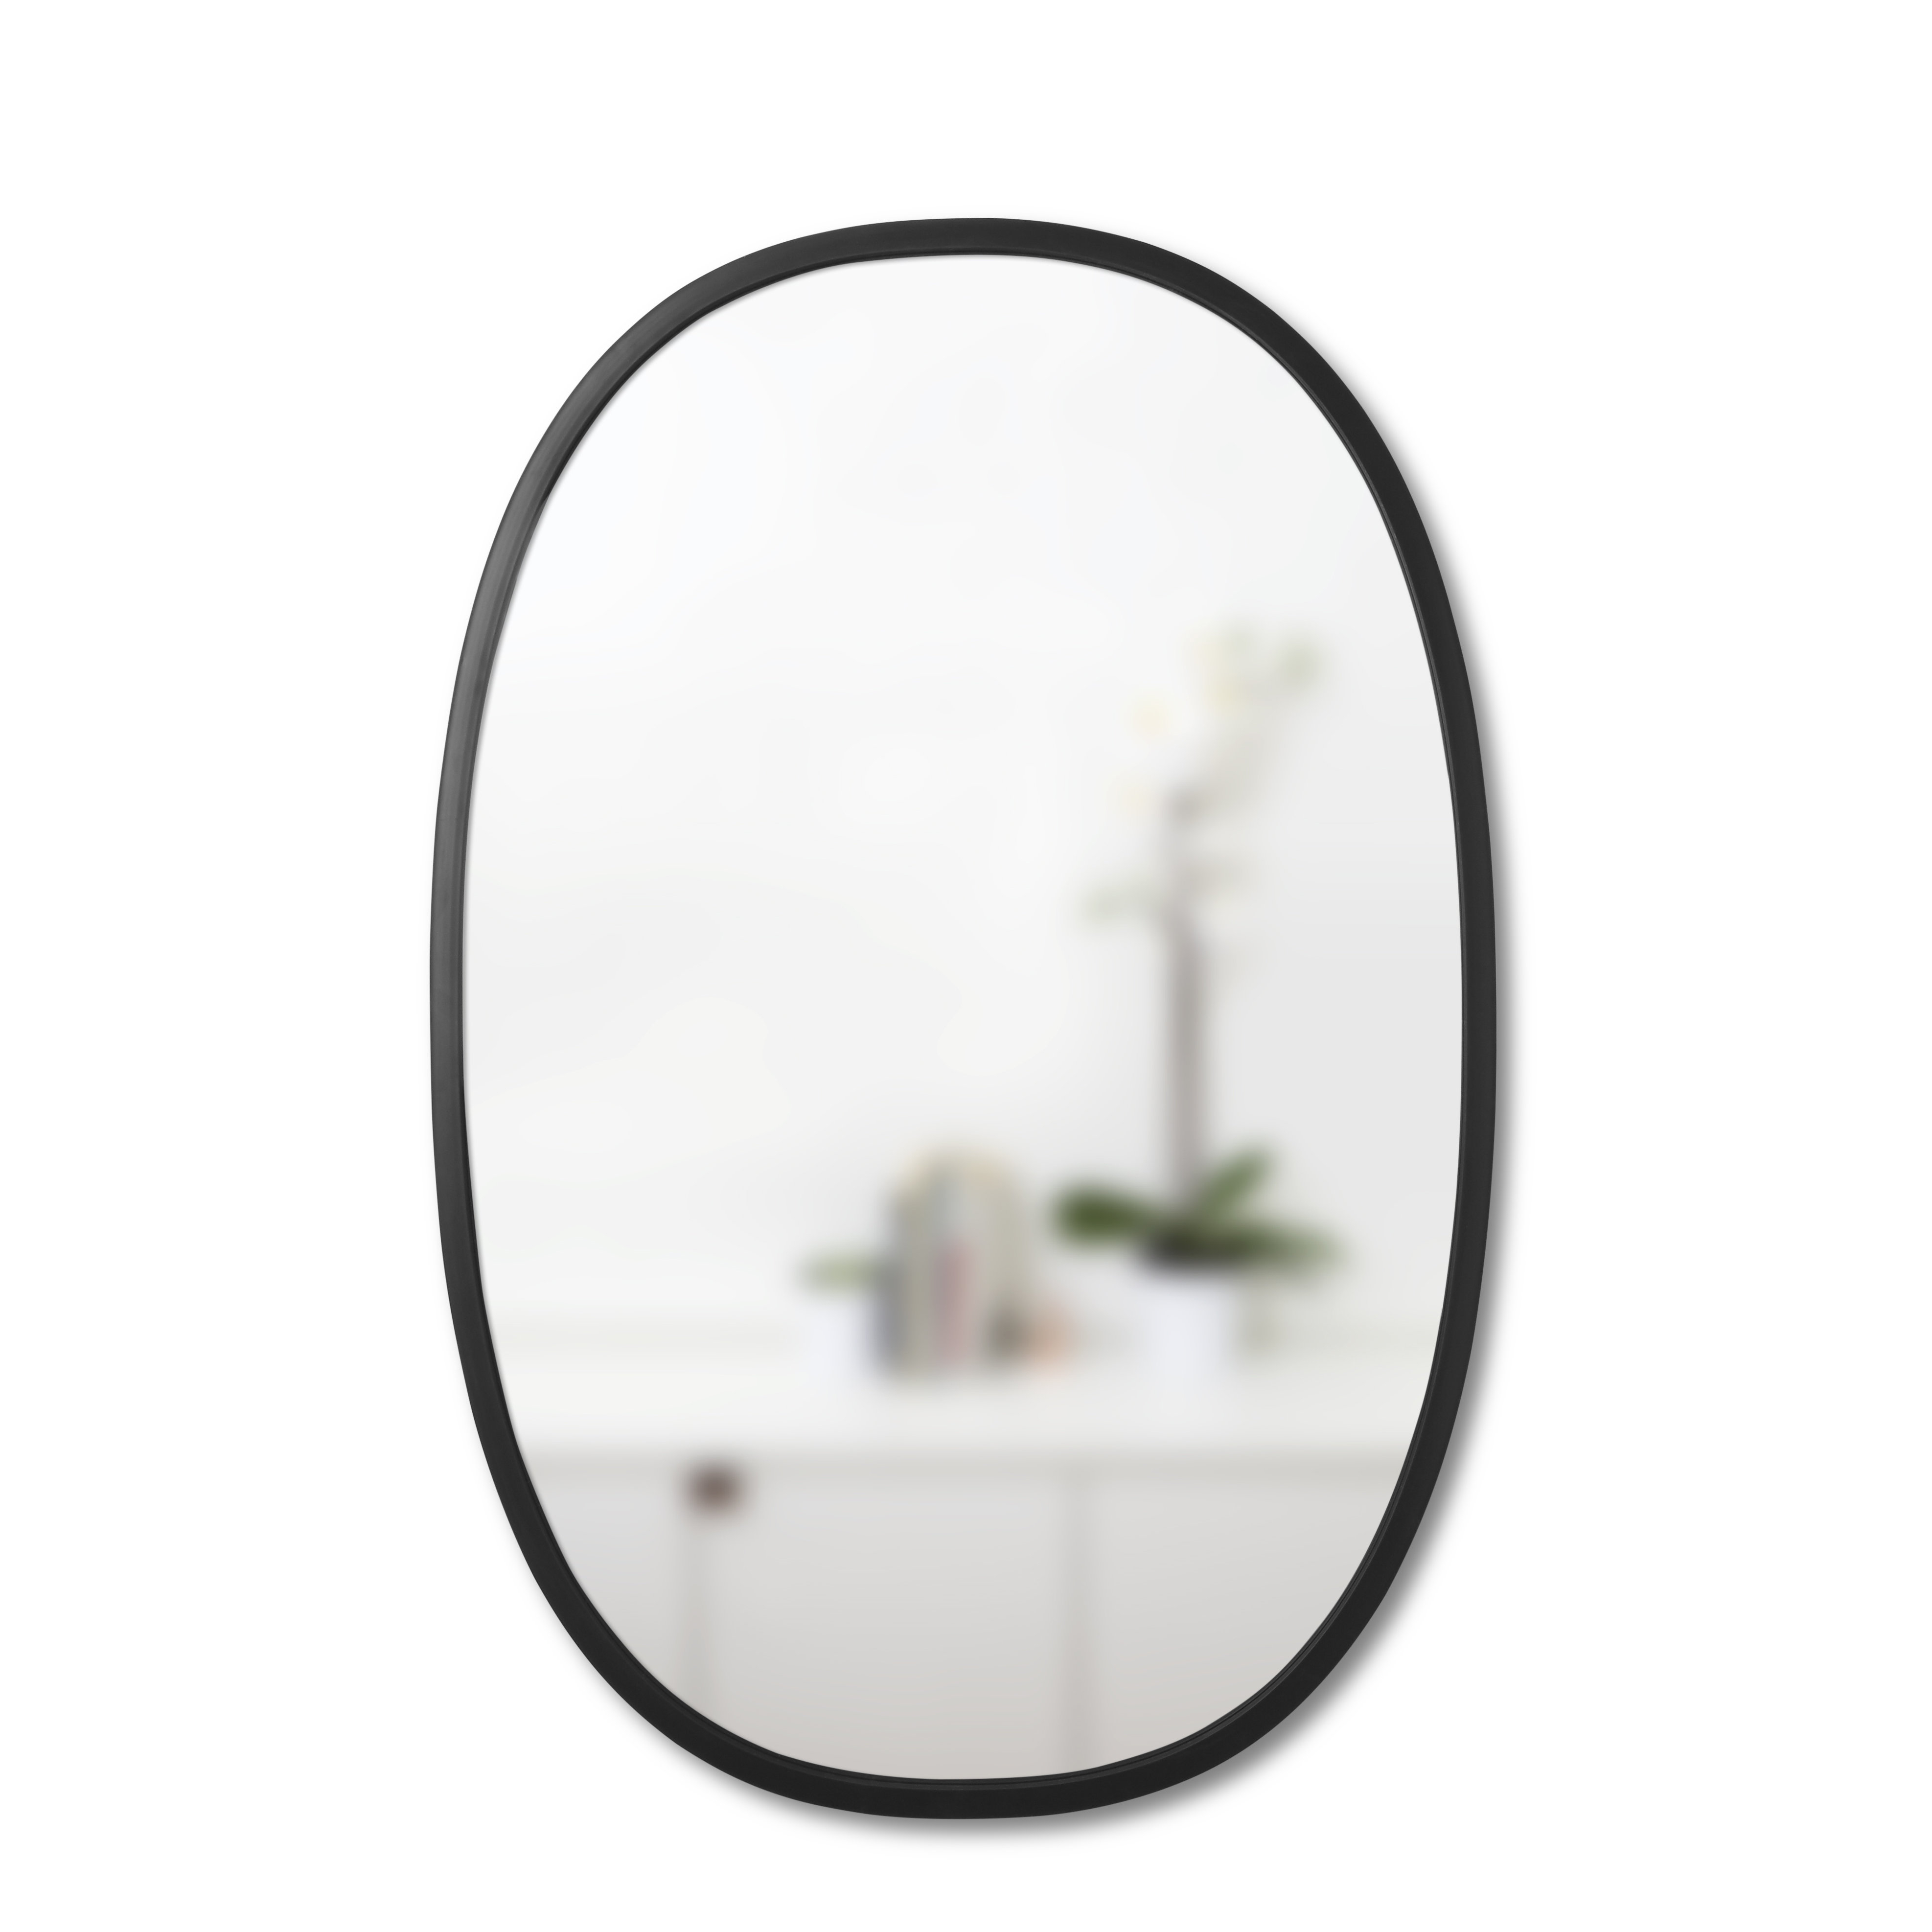 Umbra Hub Modern Contemporary Accent Mirror Inside Hub Modern And Contemporary Accent Mirrors (View 29 of 30)